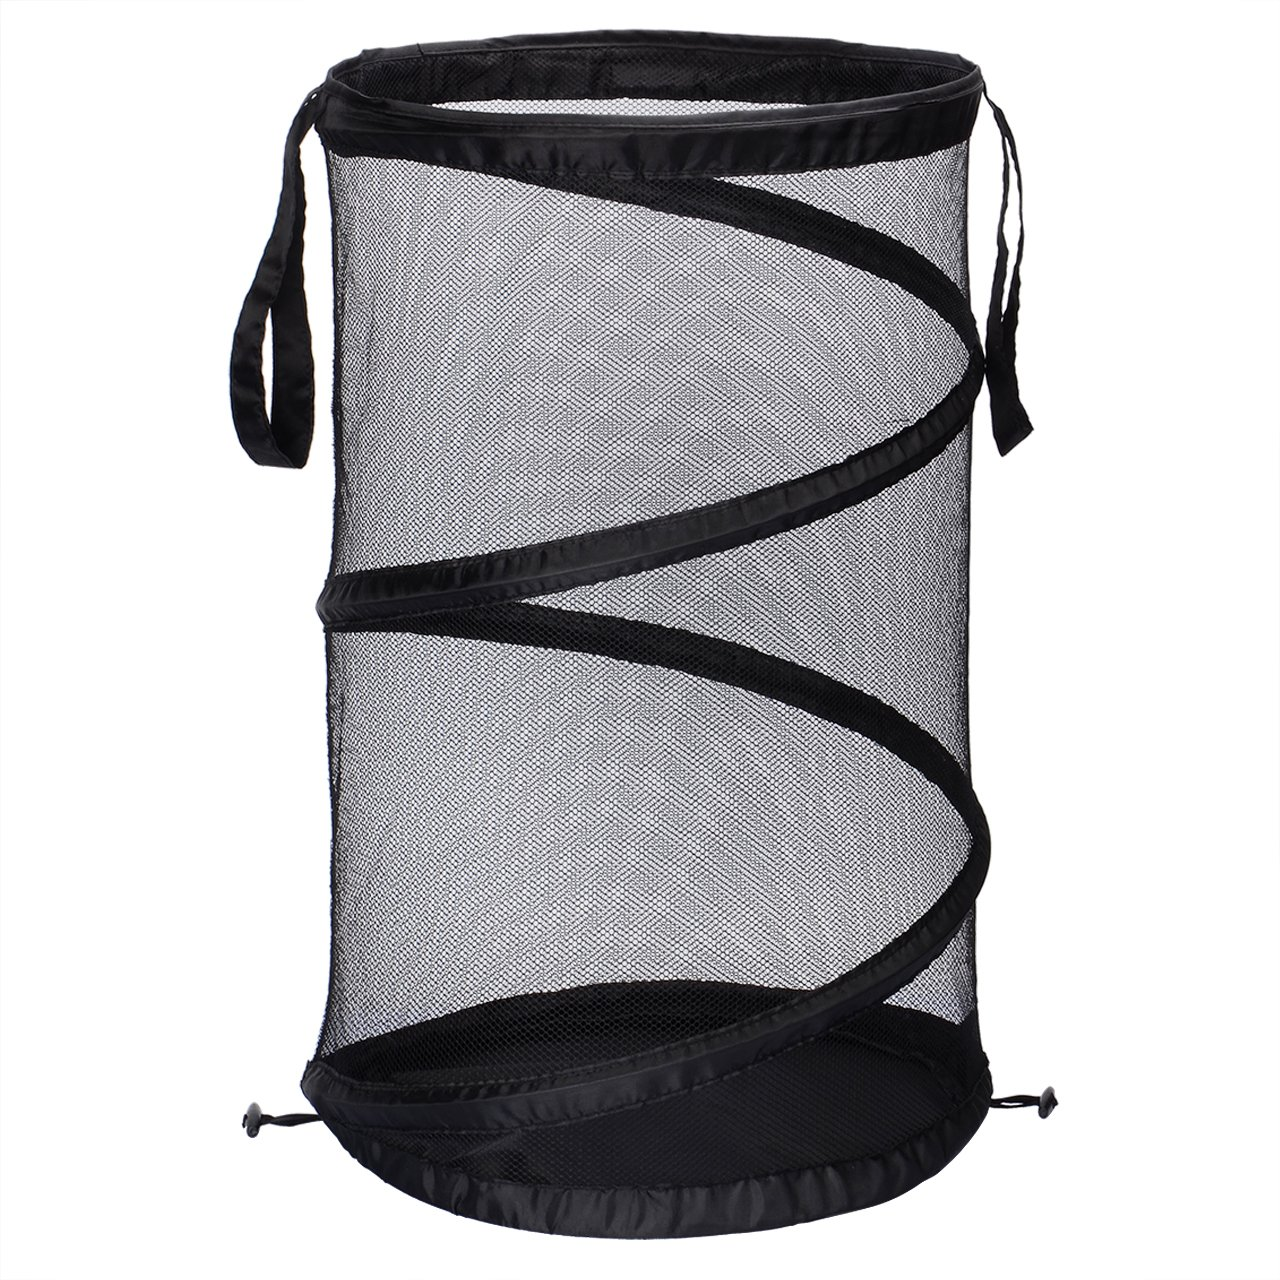 SortWise Foldable Pop-up Laundry Hamper, Durable Mesh Hamper Clothes Laundry Basket Storage Bag with Reinforced Carry Handles for Dirty Clothes, Toys